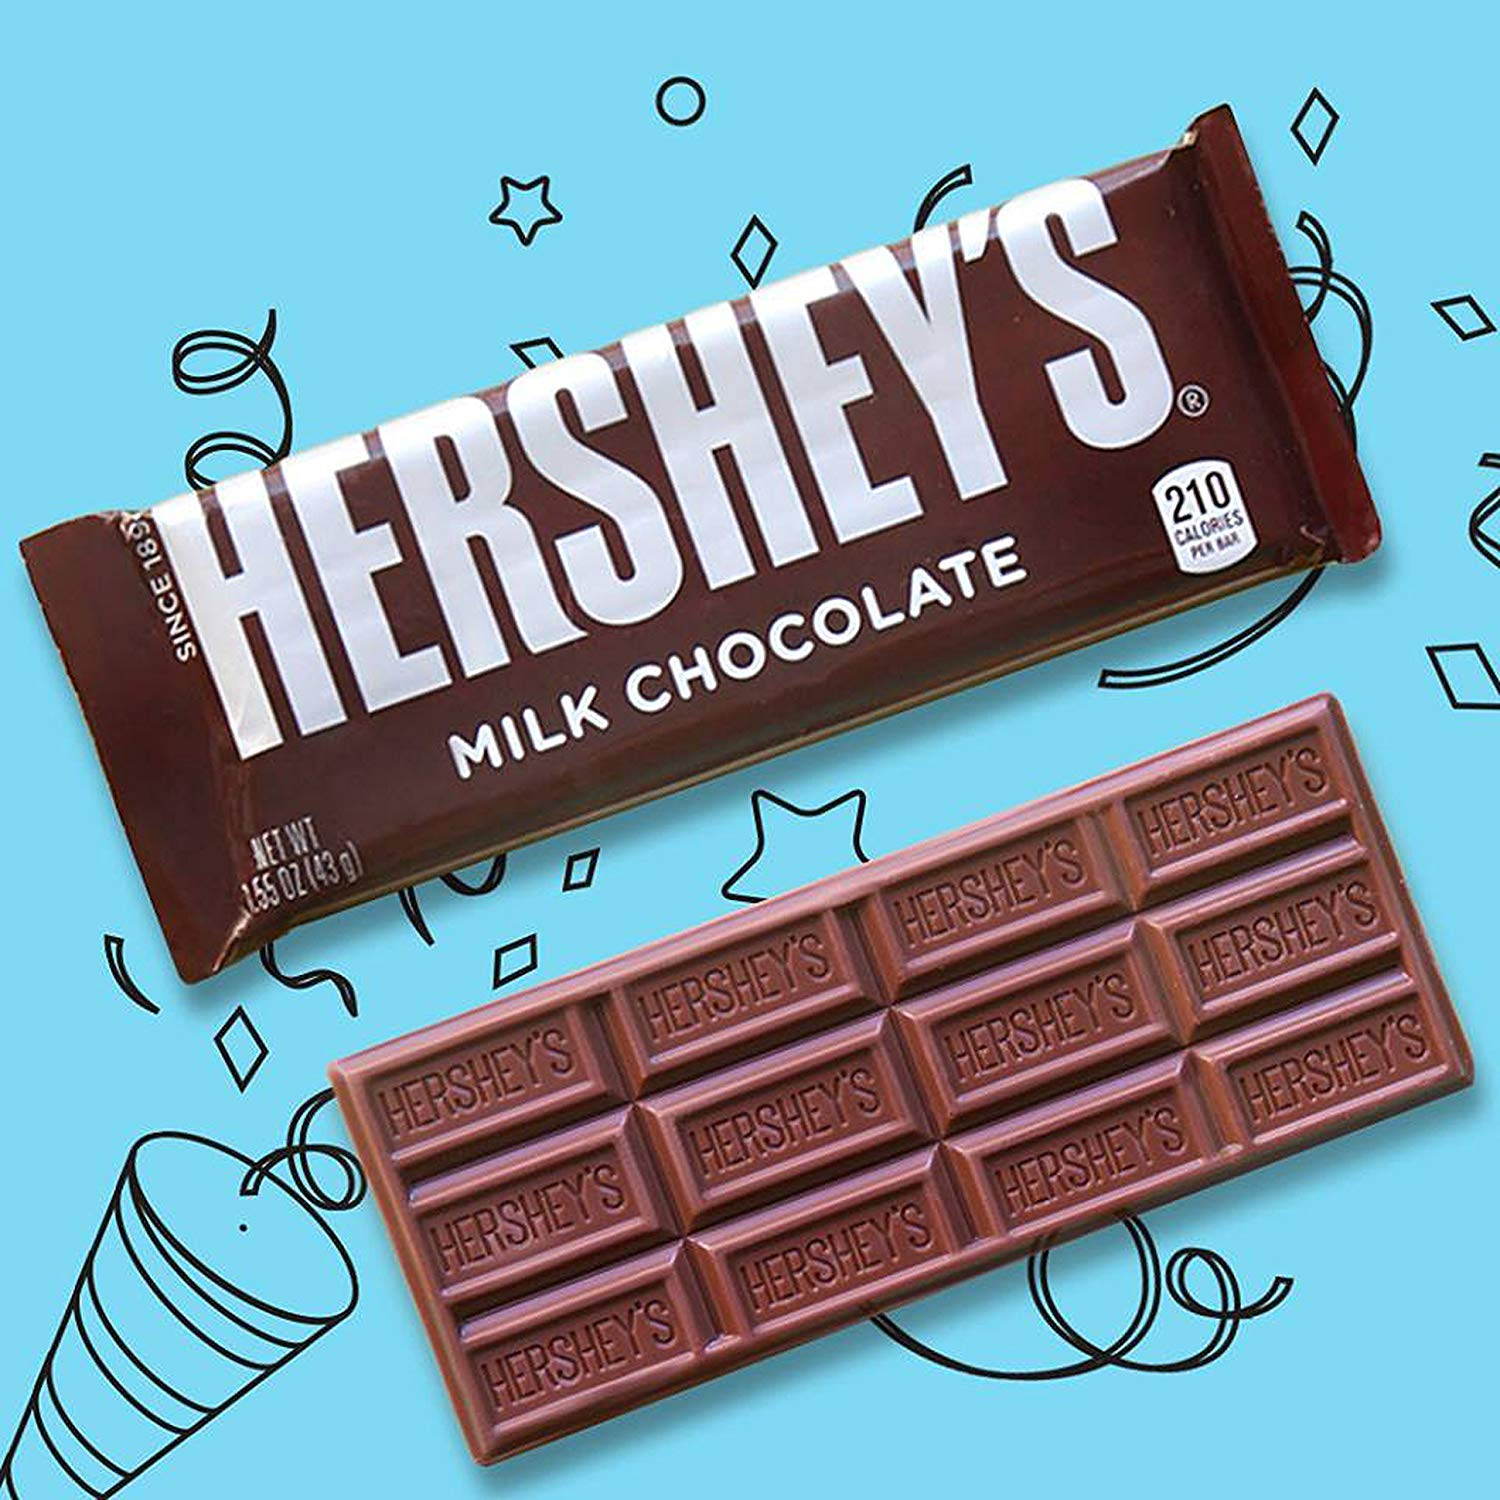 HERSHEY'S Milk Chocolate Candy Bars, 1.55-oz. Bars, 36 Count by HERSHEY'S (Image #4)